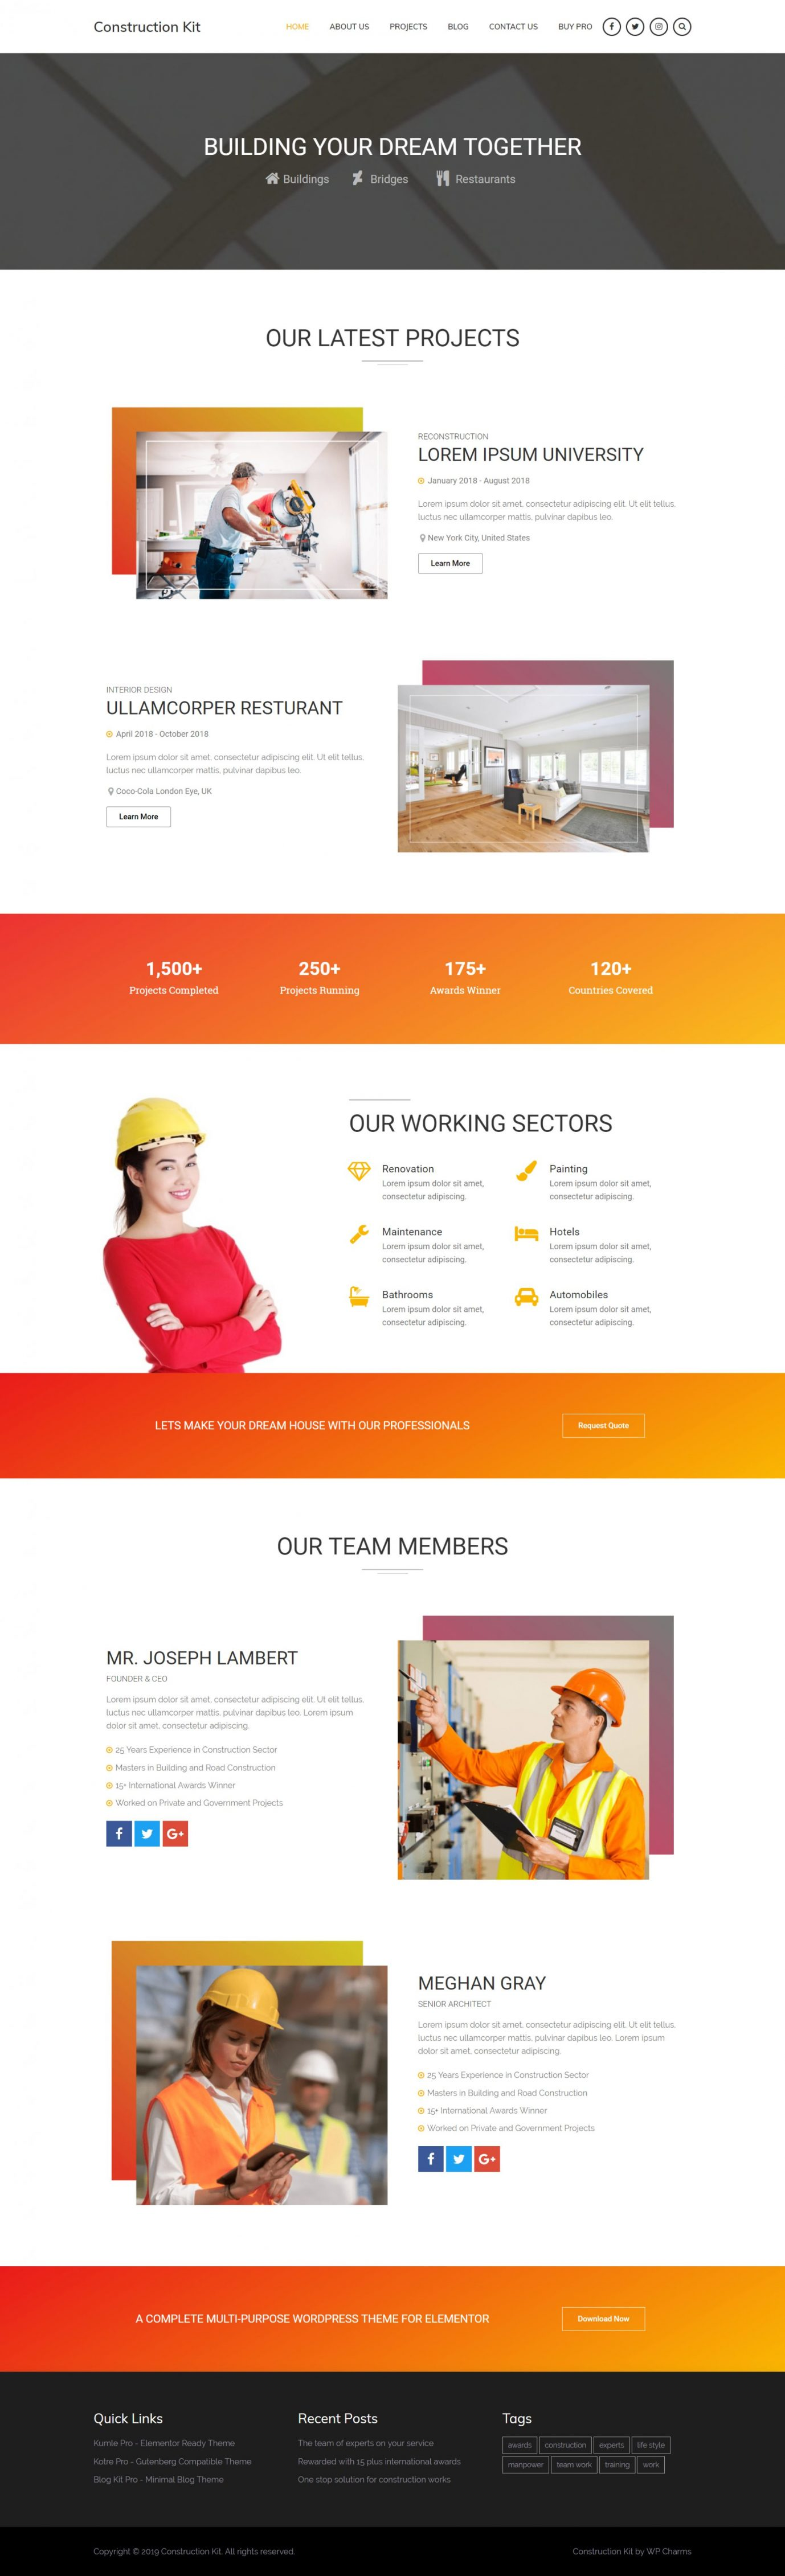 Free WordPress Construction Theme - Demo 1